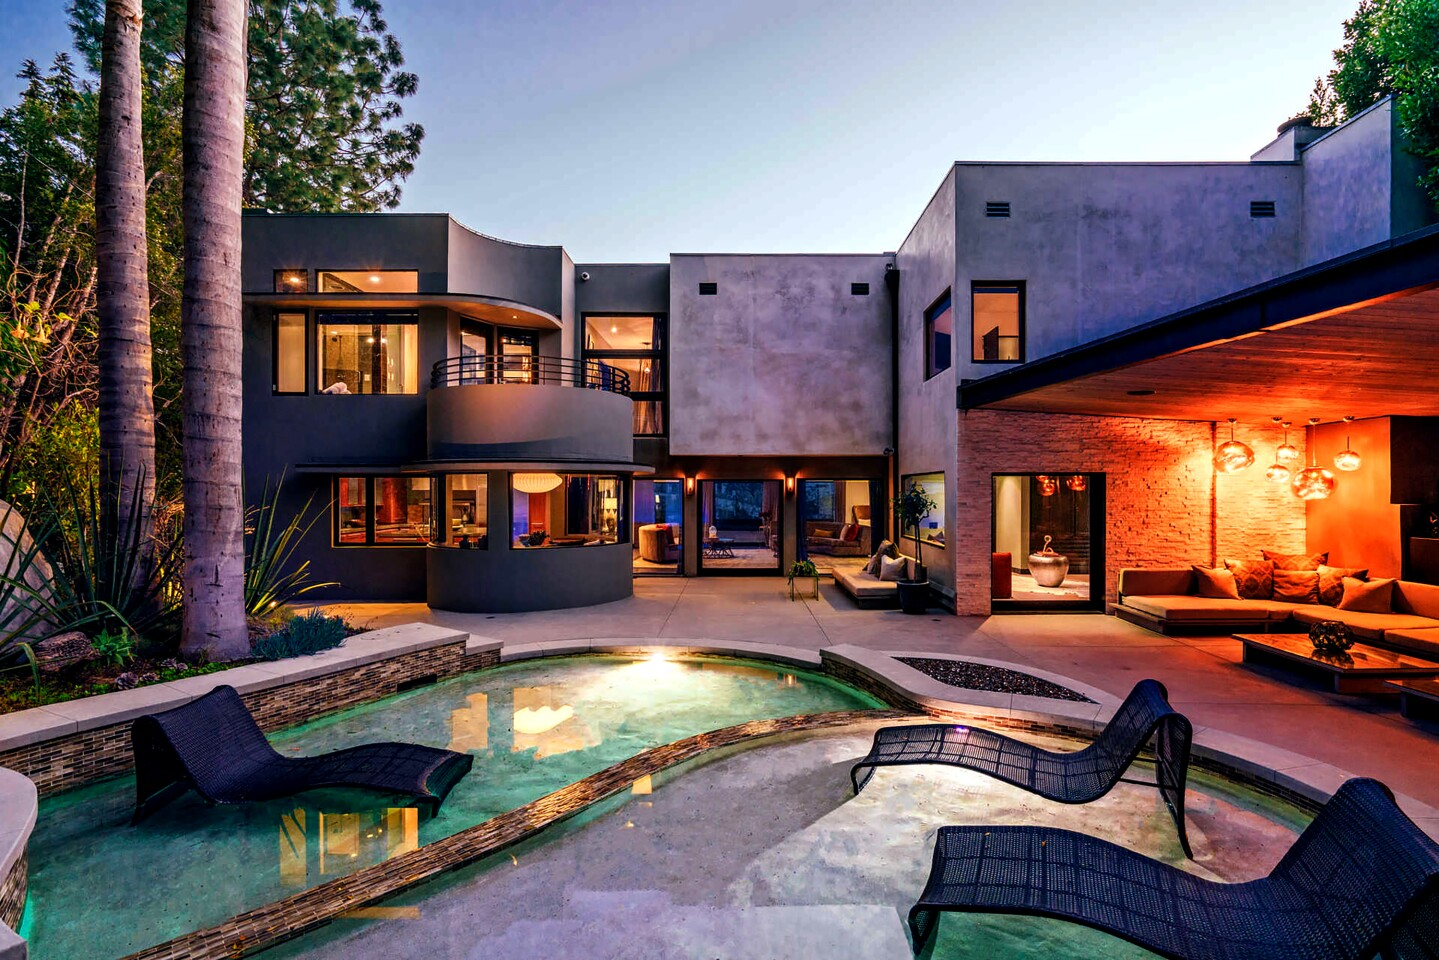 """Two years after bringing it to market, """"American Idol"""" alum Adam Lambert found a buyer for his Hollywood Home. The subdued contemporary home, which features a resort-like backyard, sold for $2.92 million, or $75,000 less than what Lambert paid in 2014. The home has roughly 3,000 square feet of living space, an indoor-outdoor living room and a dining room with a wine closet. A guest suite was used by Lambert as a music room."""